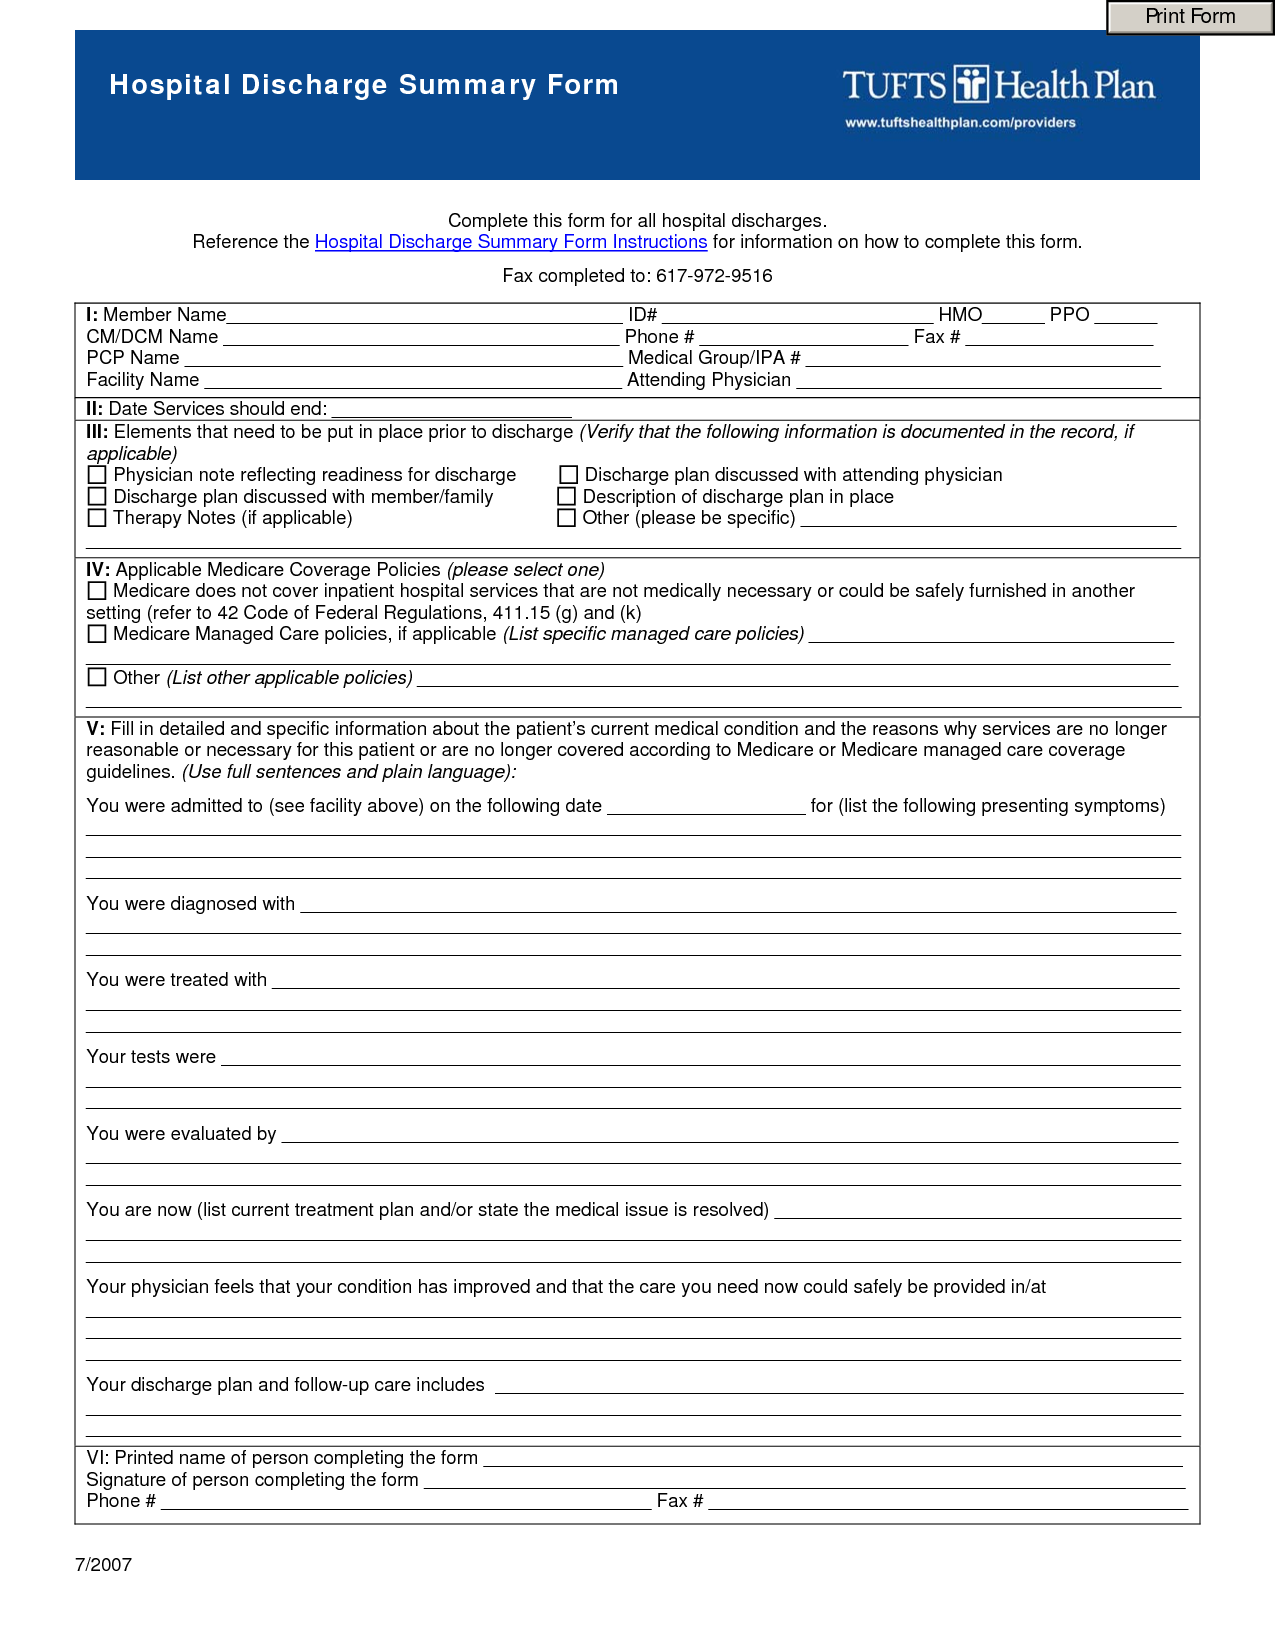 Sample Hospital Discharge Forms Doctors Note Urgent Care